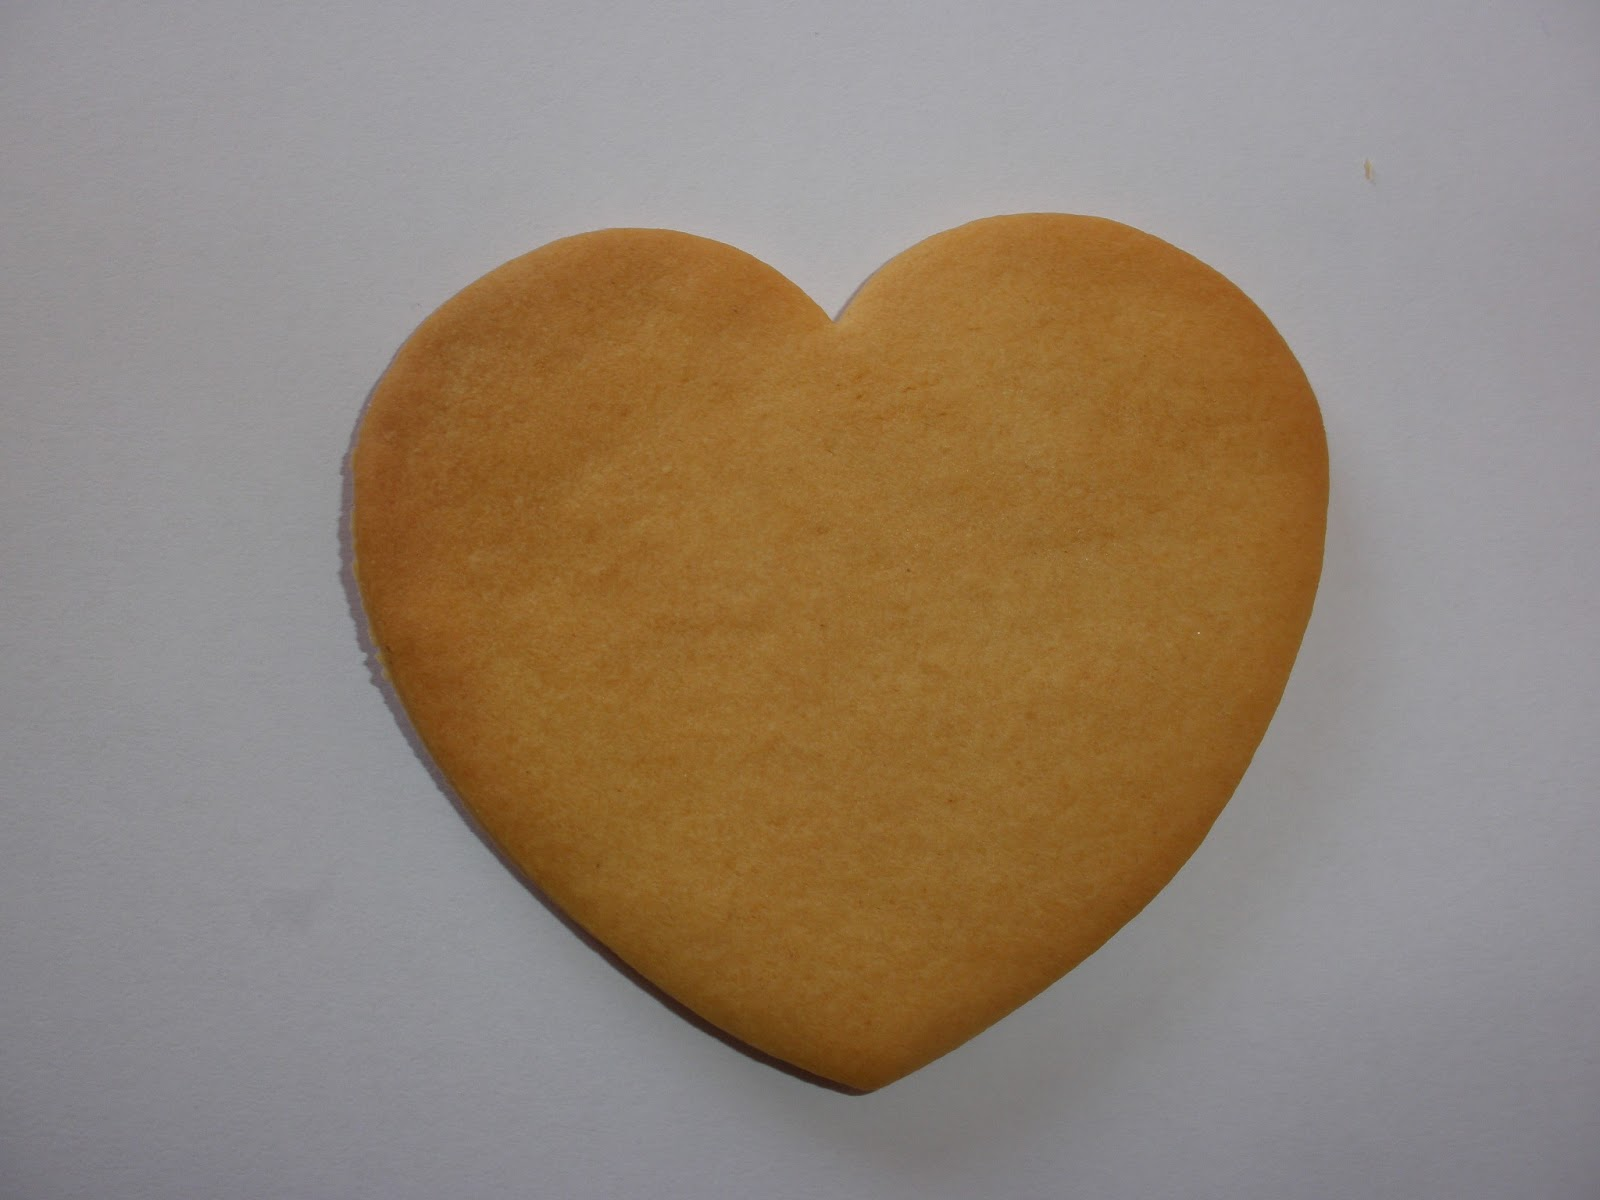 Como Decorar Galletas De Corazon Recursos Culinarios Galleta Decorada Con Glasa Real